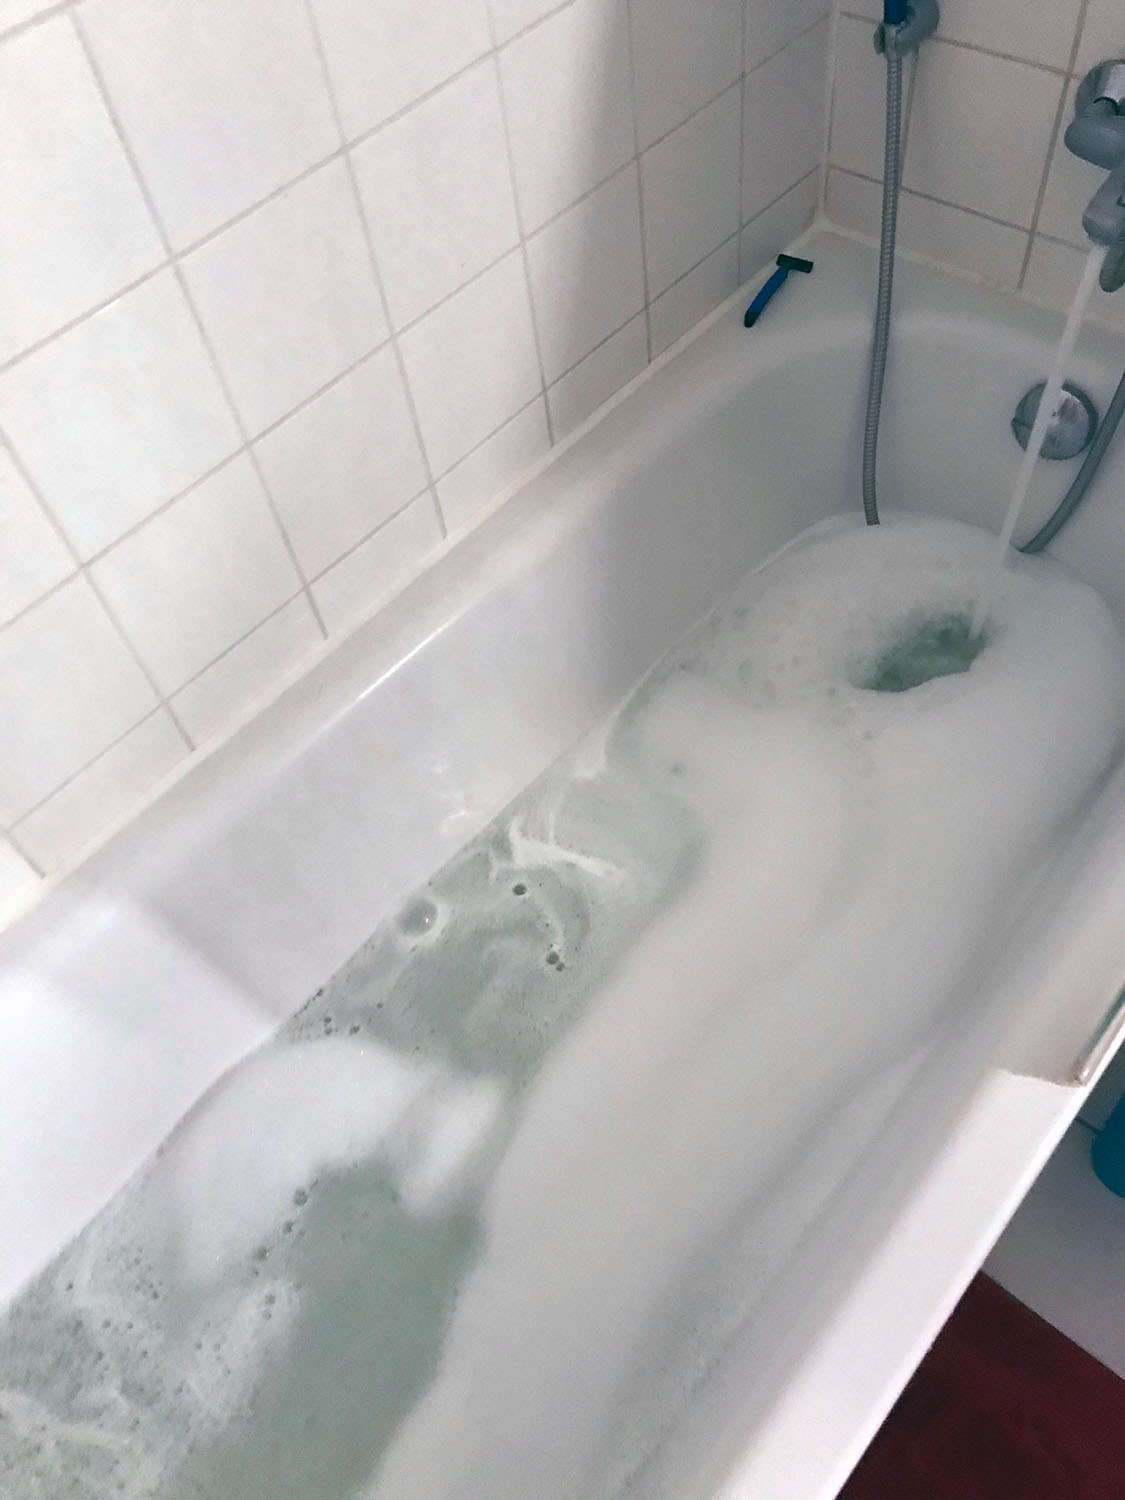 Empty bathtub with bubbles